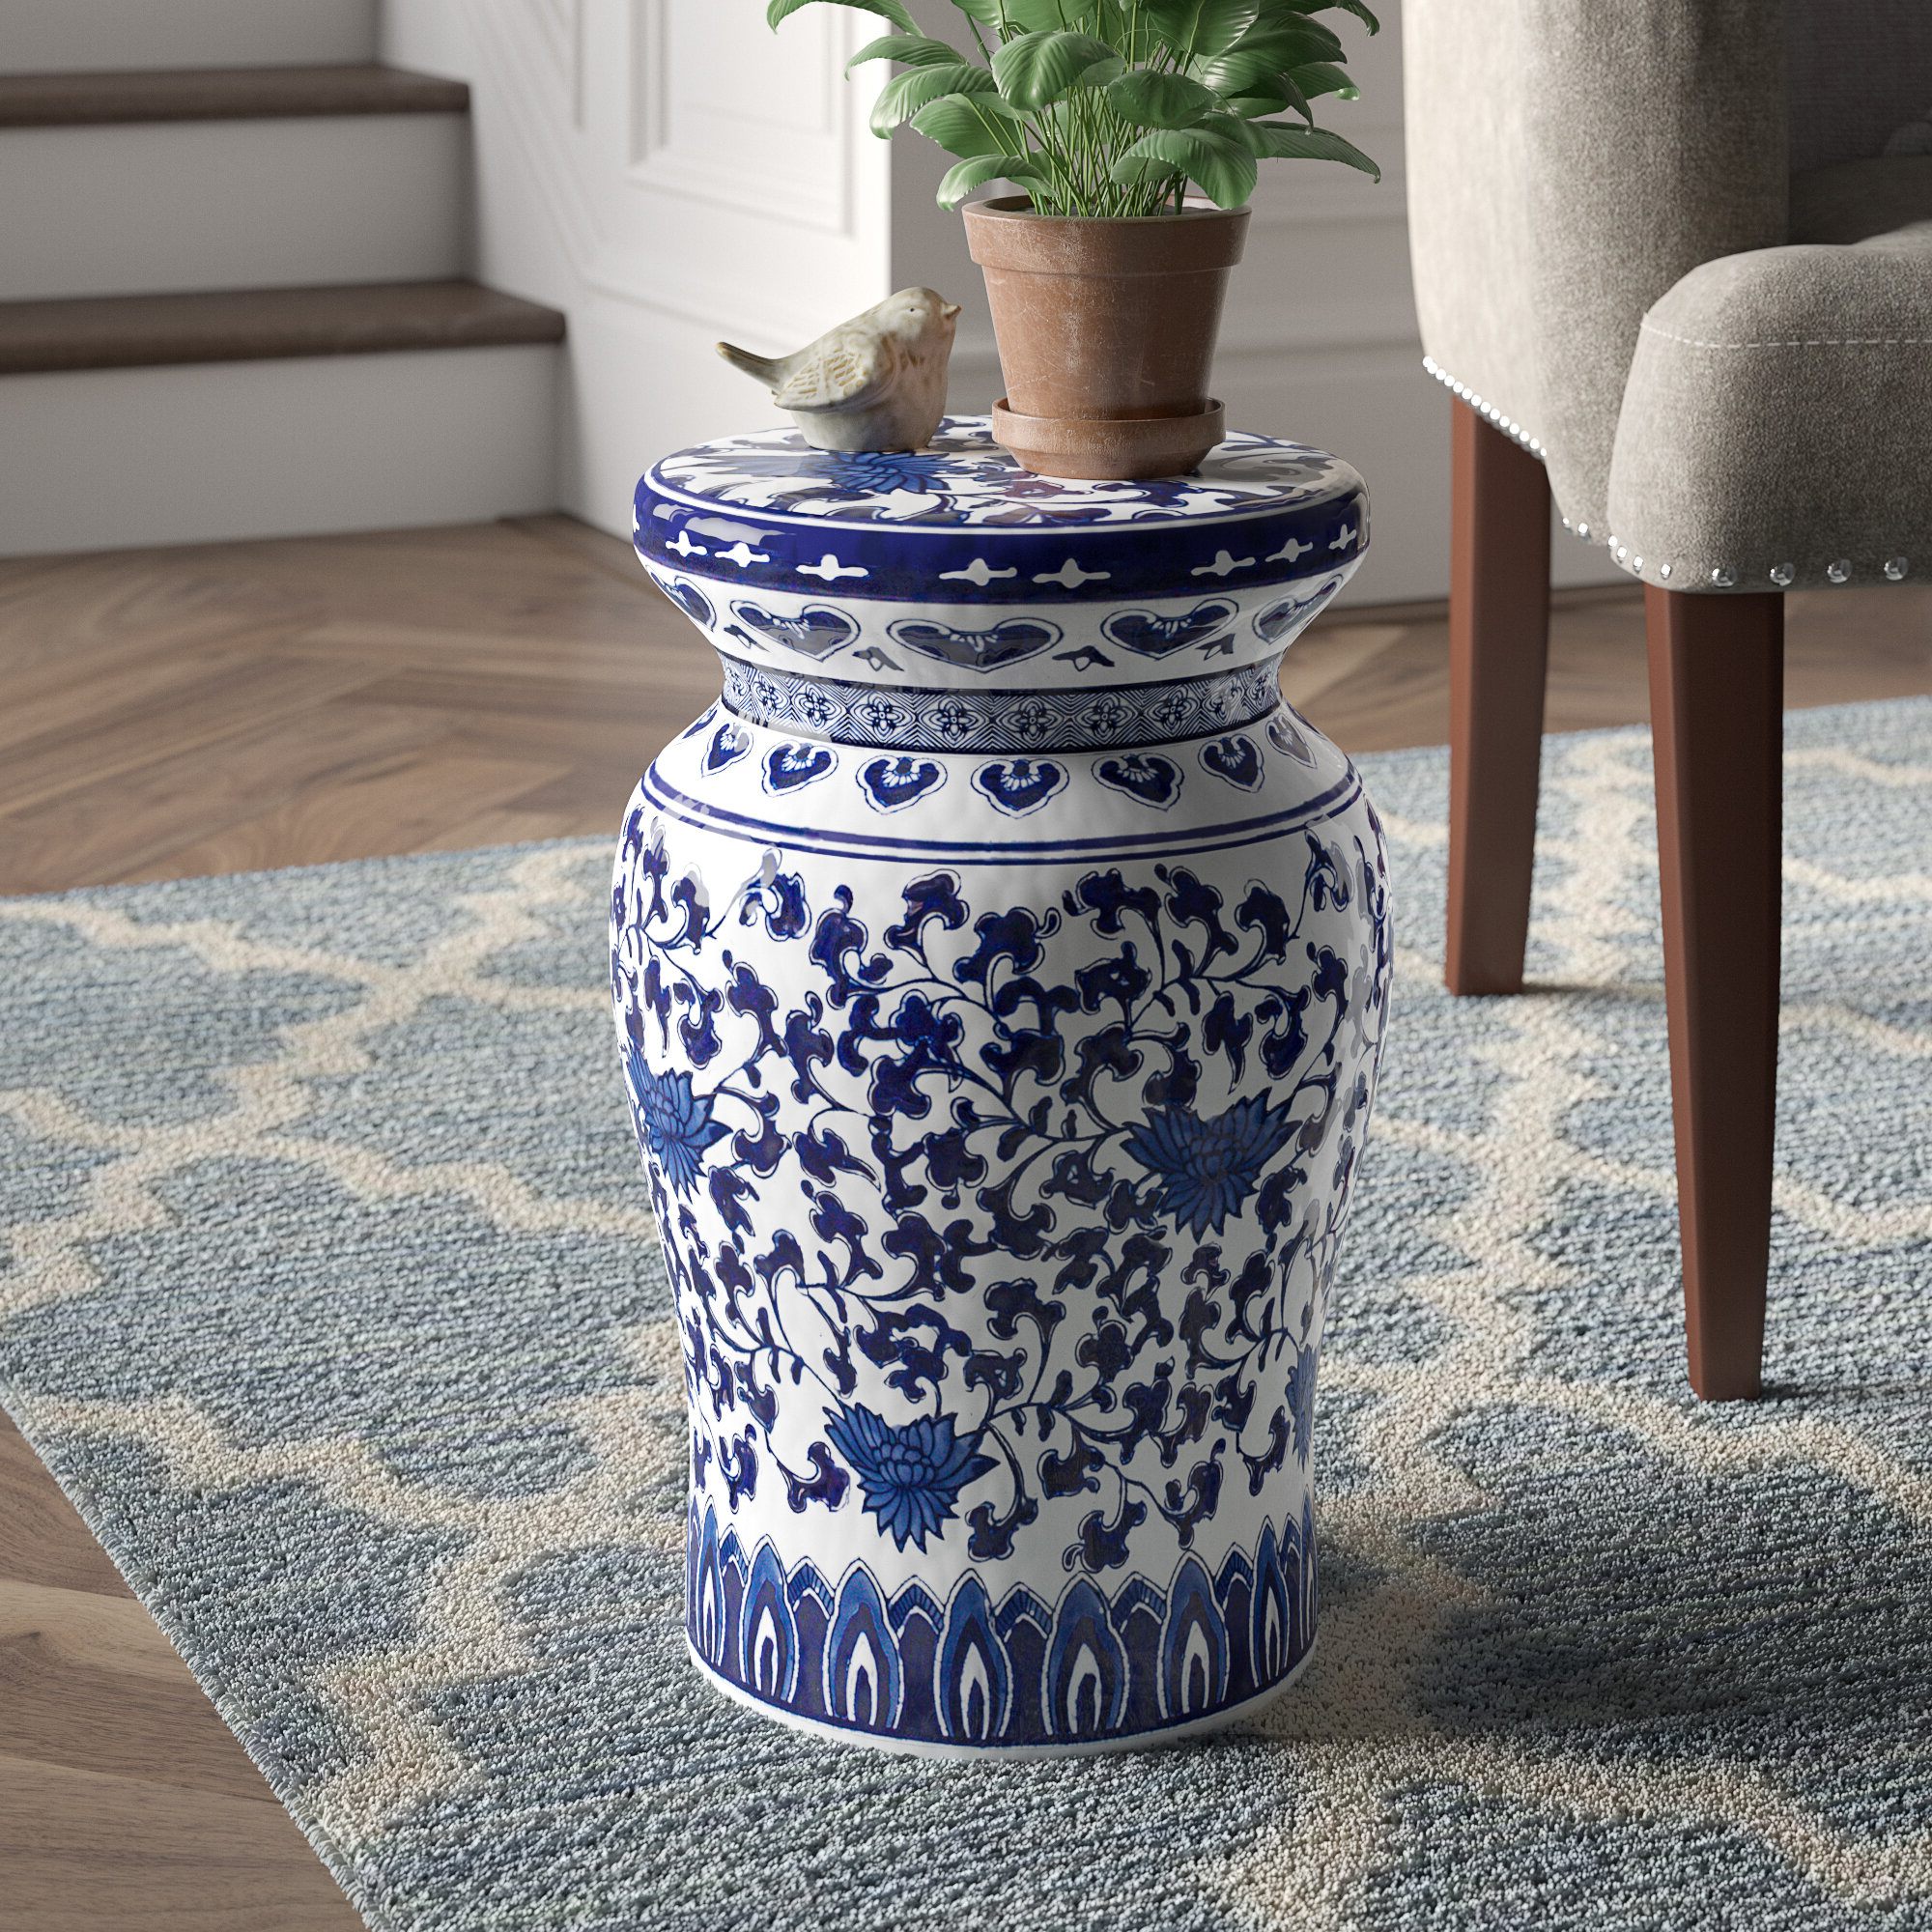 Wiese Cherry Blossom Ceramic Garden Stools Within Widely Used Houghtaling Decorative Garden Stool (View 8 of 30)